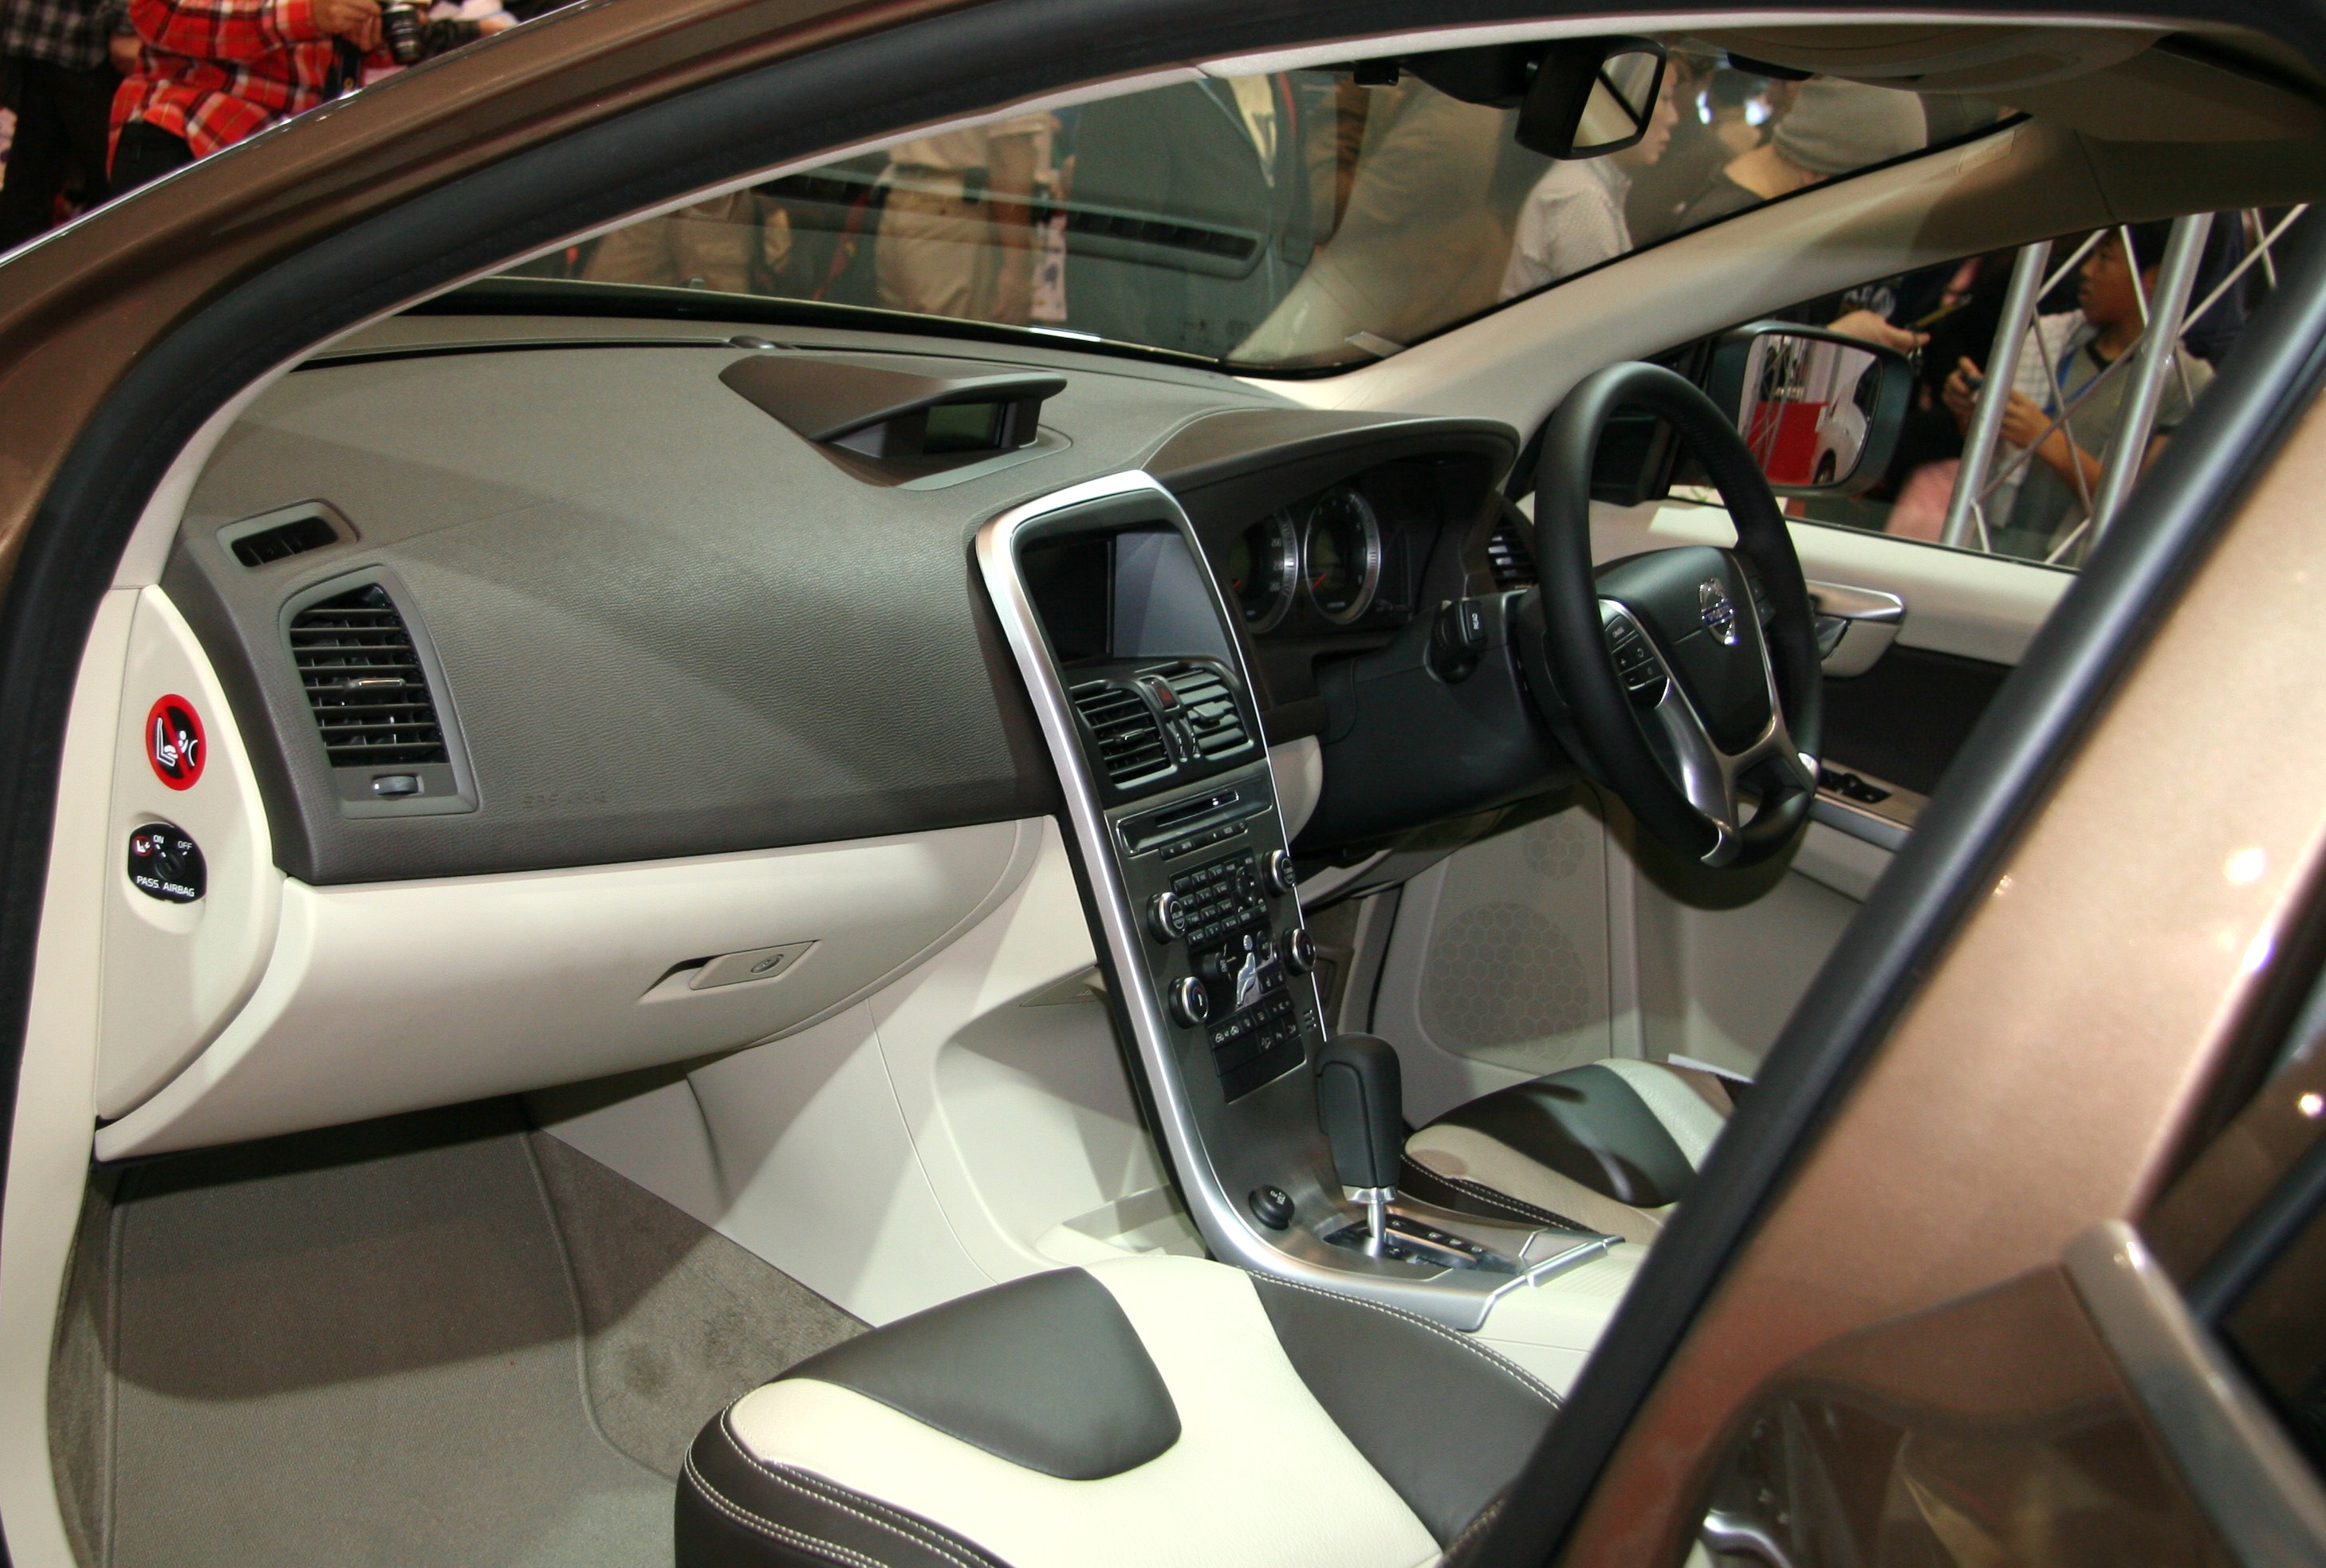 Datei:Volvo XC60 interior.jpg – Wikipedia